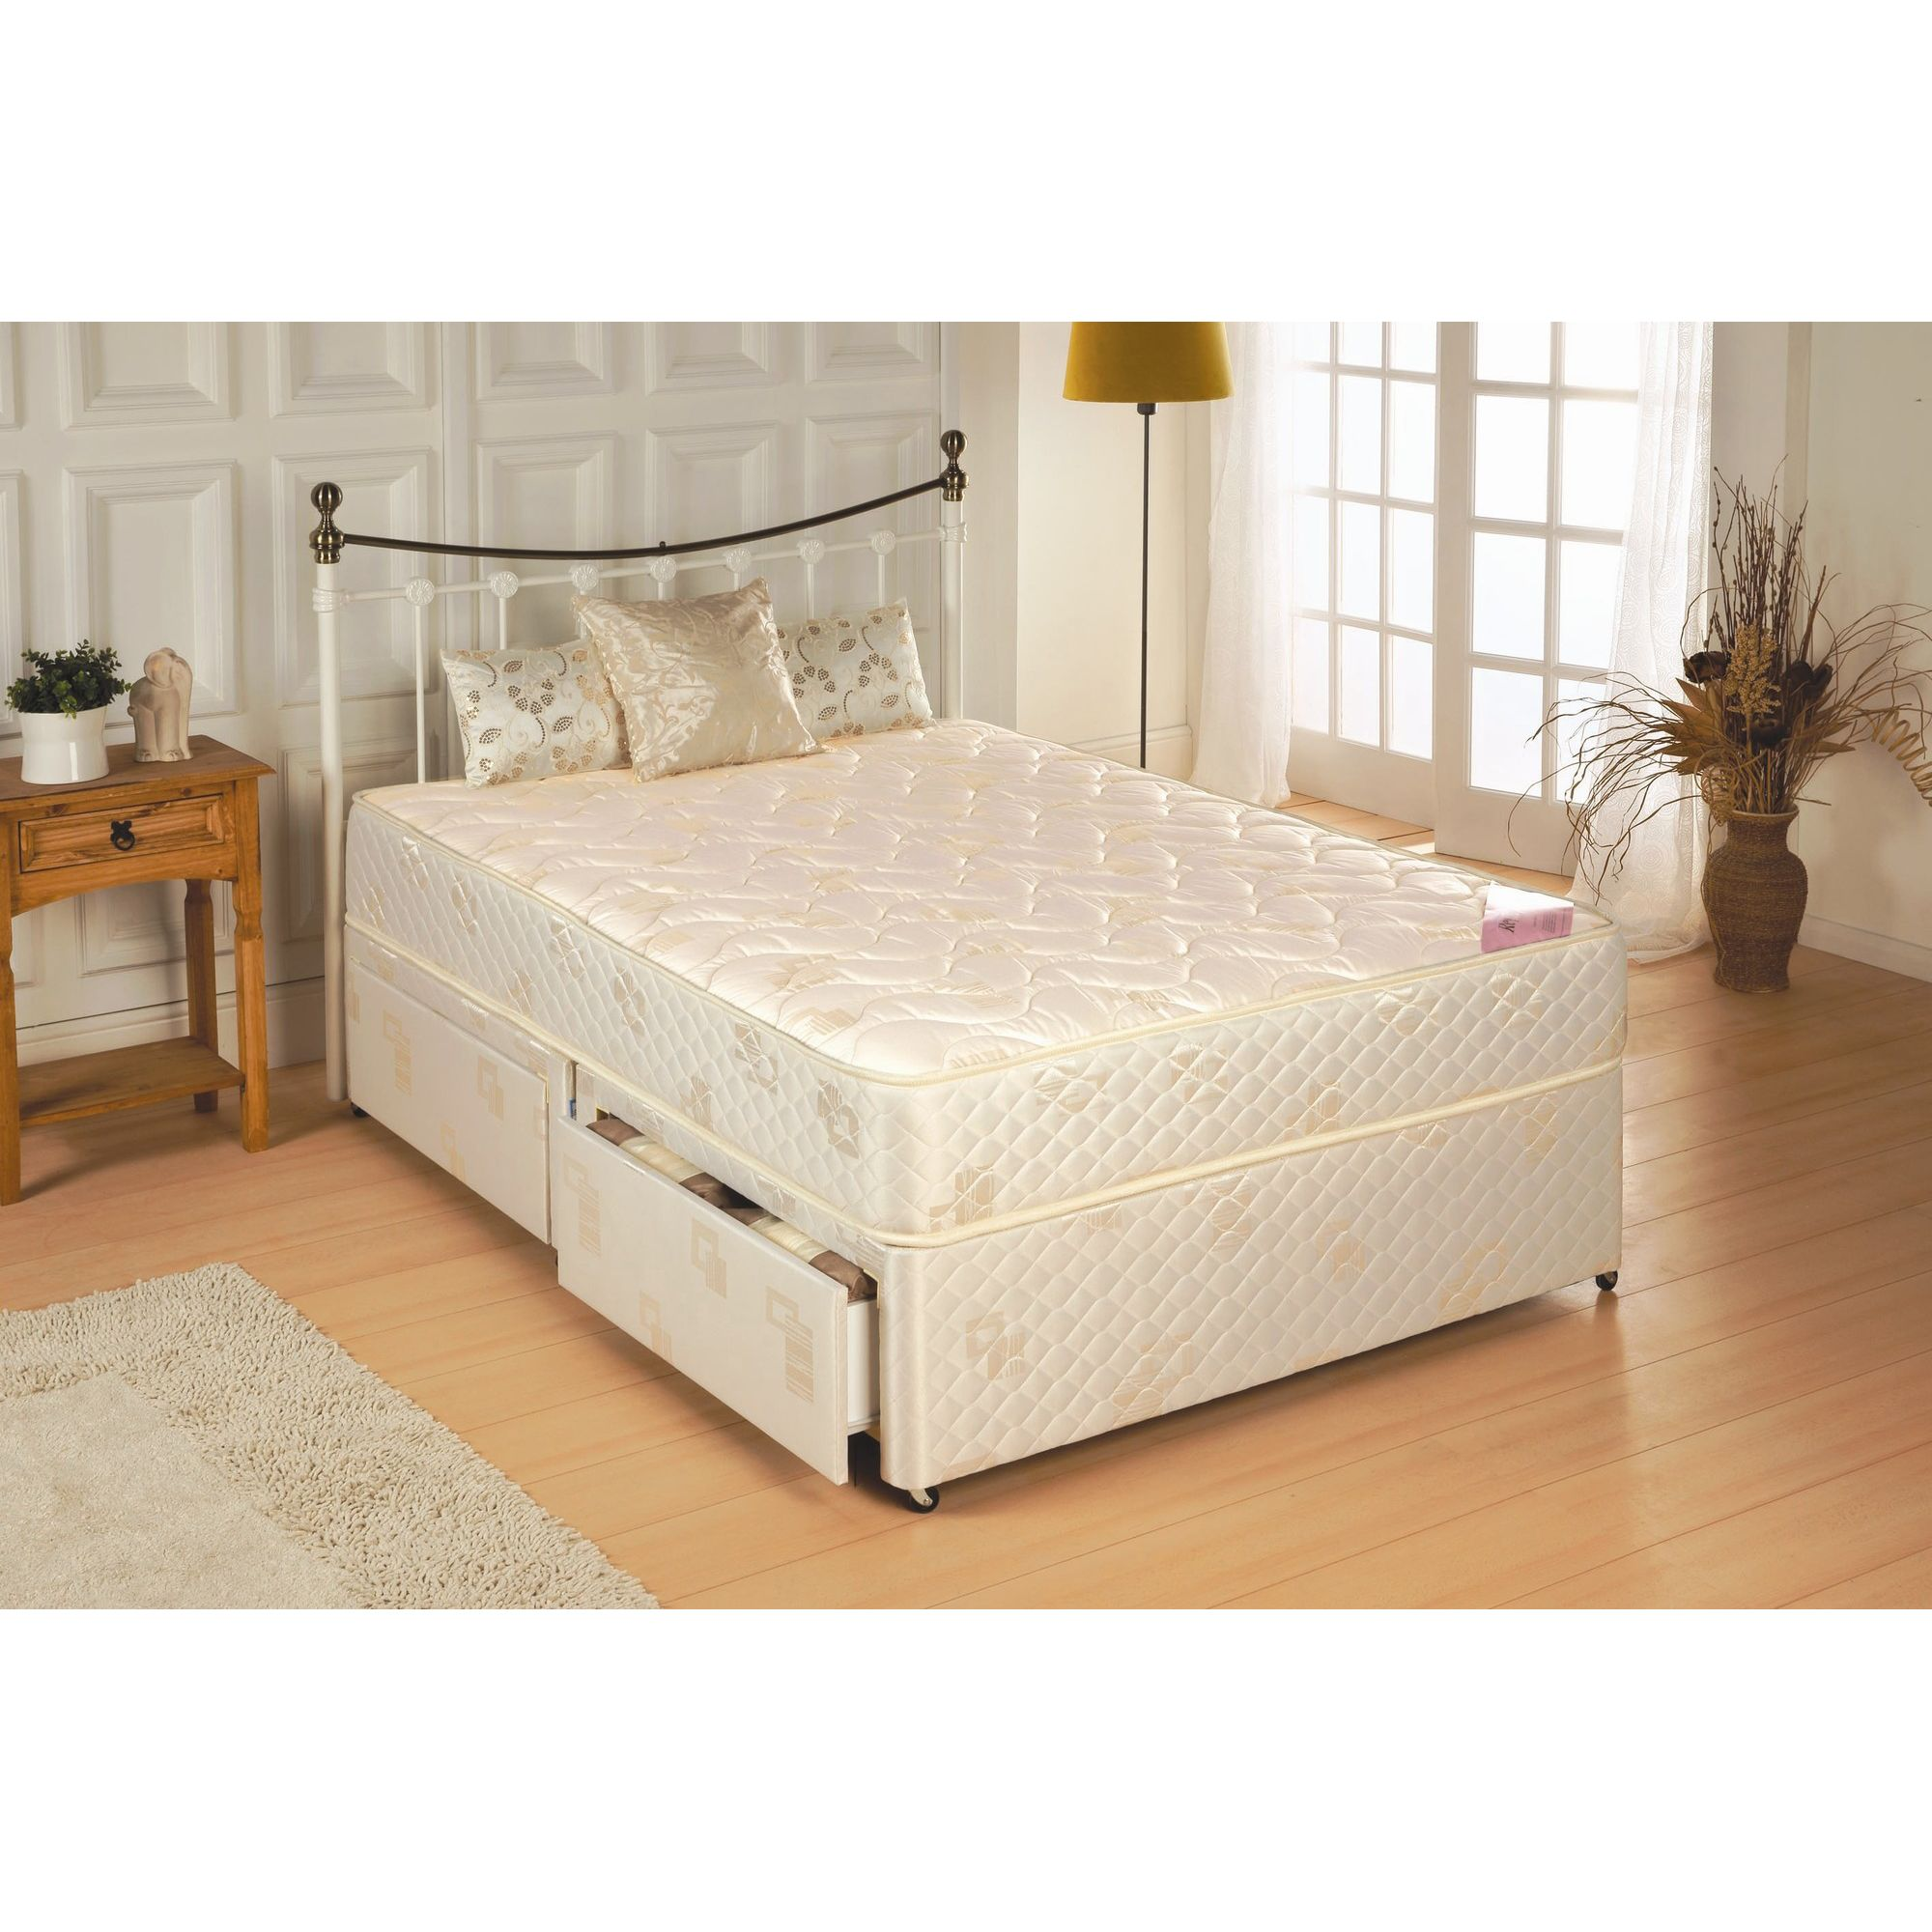 Repose New Jasmine Platform Set - Small Single/Single / 2 Drawer at Tesco Direct